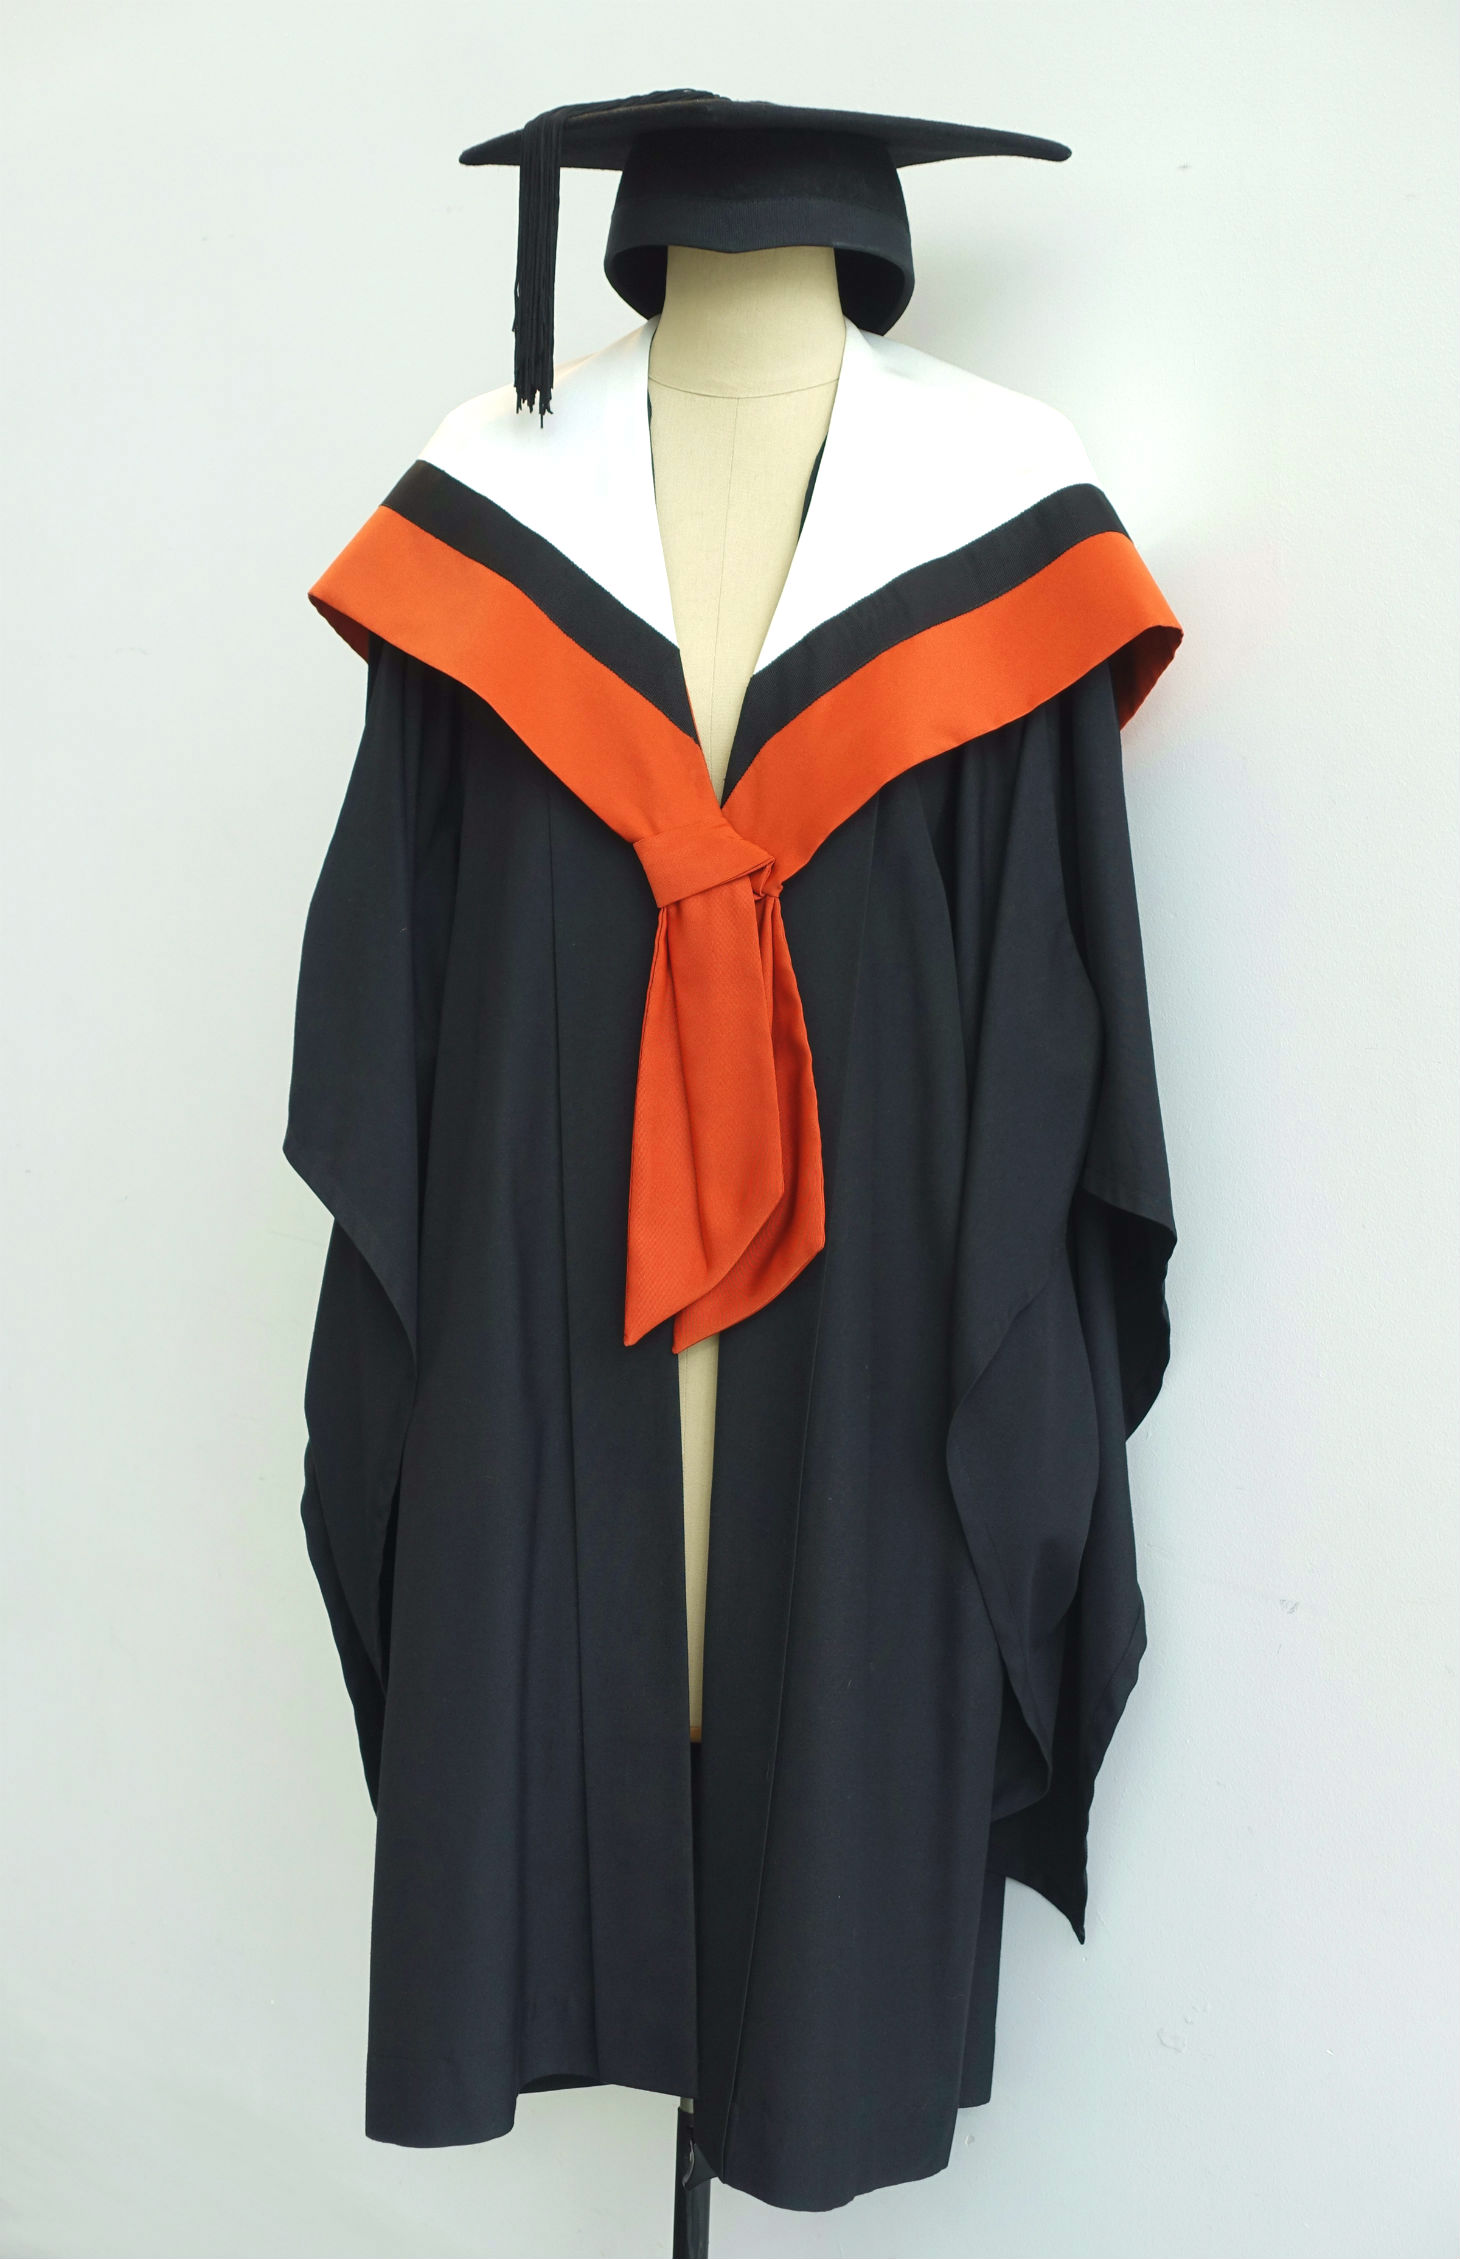 Graduation Dress University Of Sydney - Eligent Prom Dresses